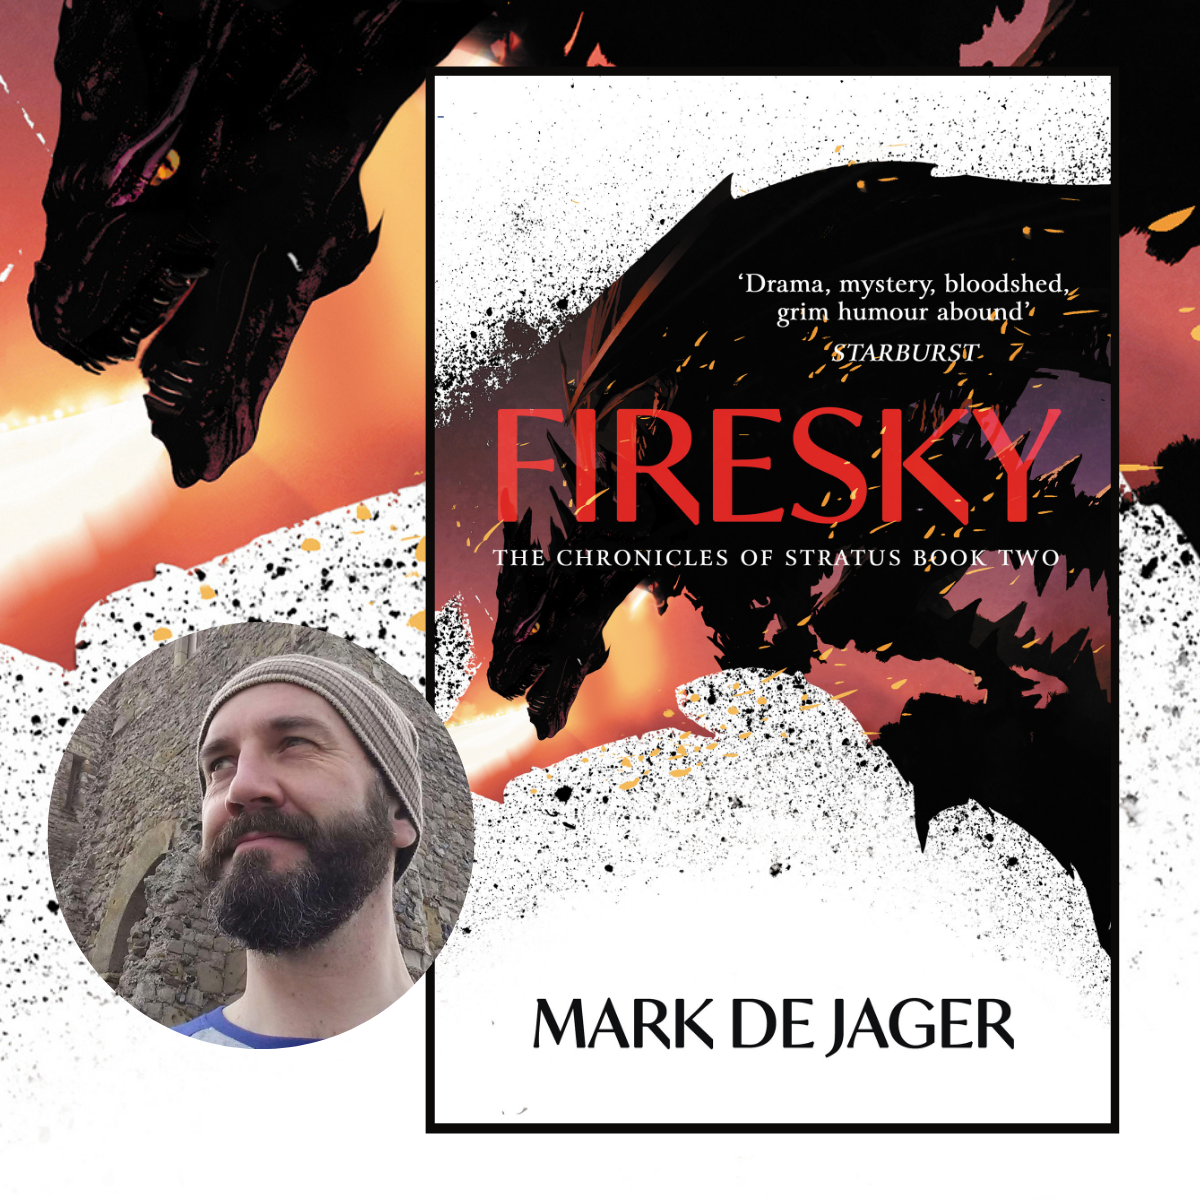 Firesky cover reveal